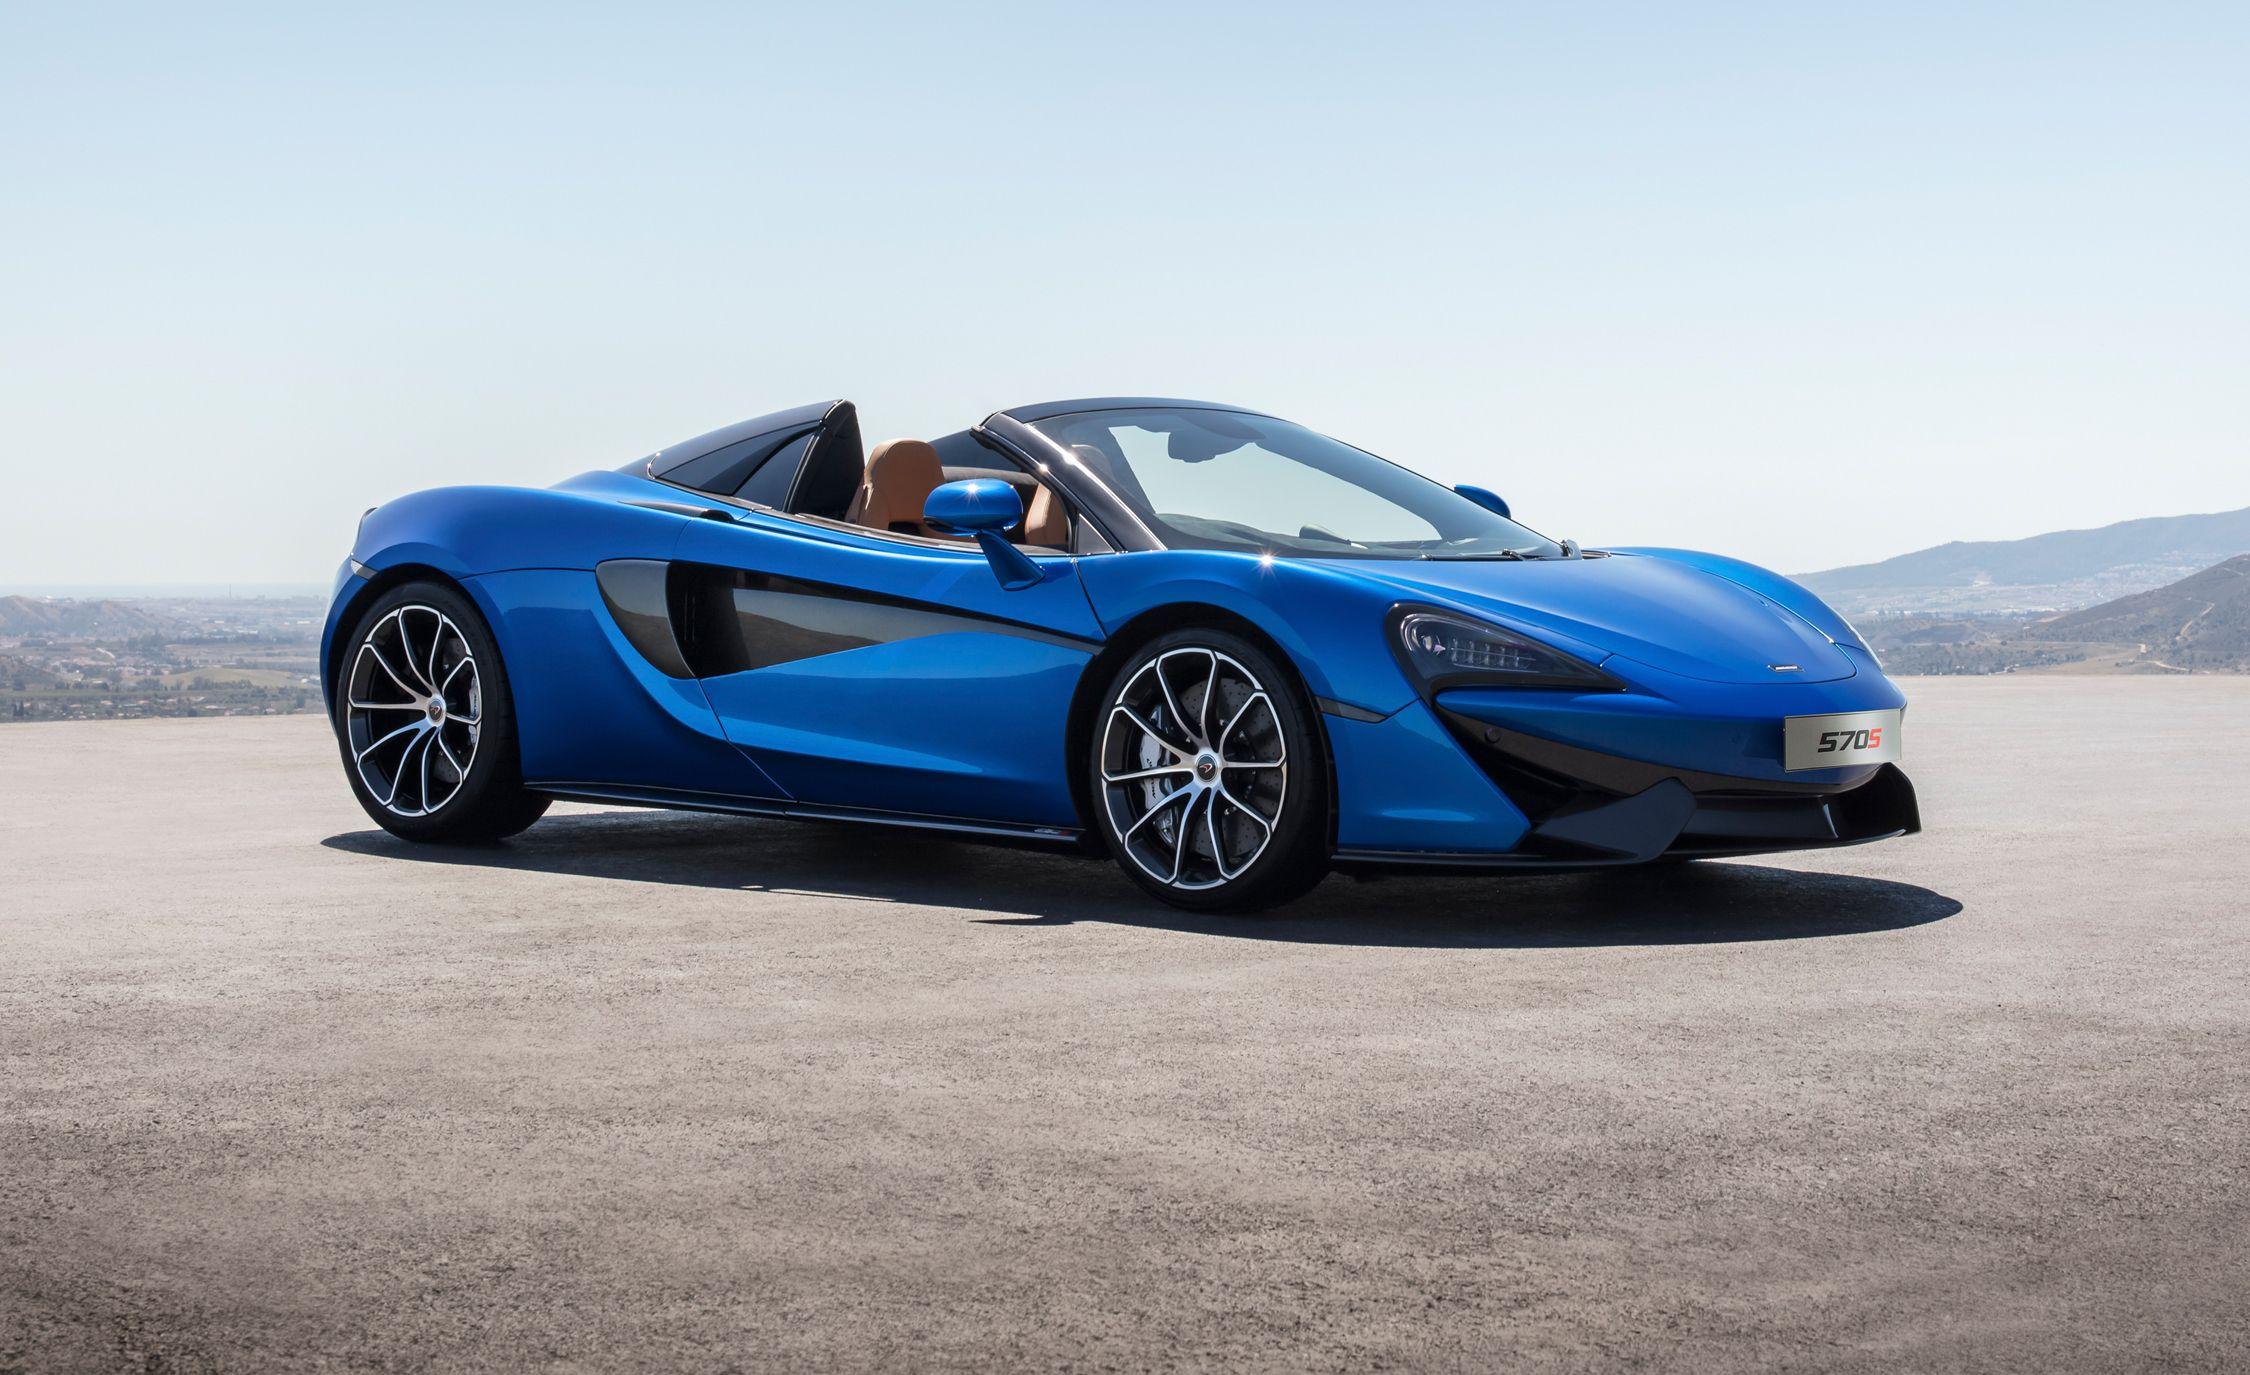 2018 Mclaren 570s Spider Photos And Info News Car And